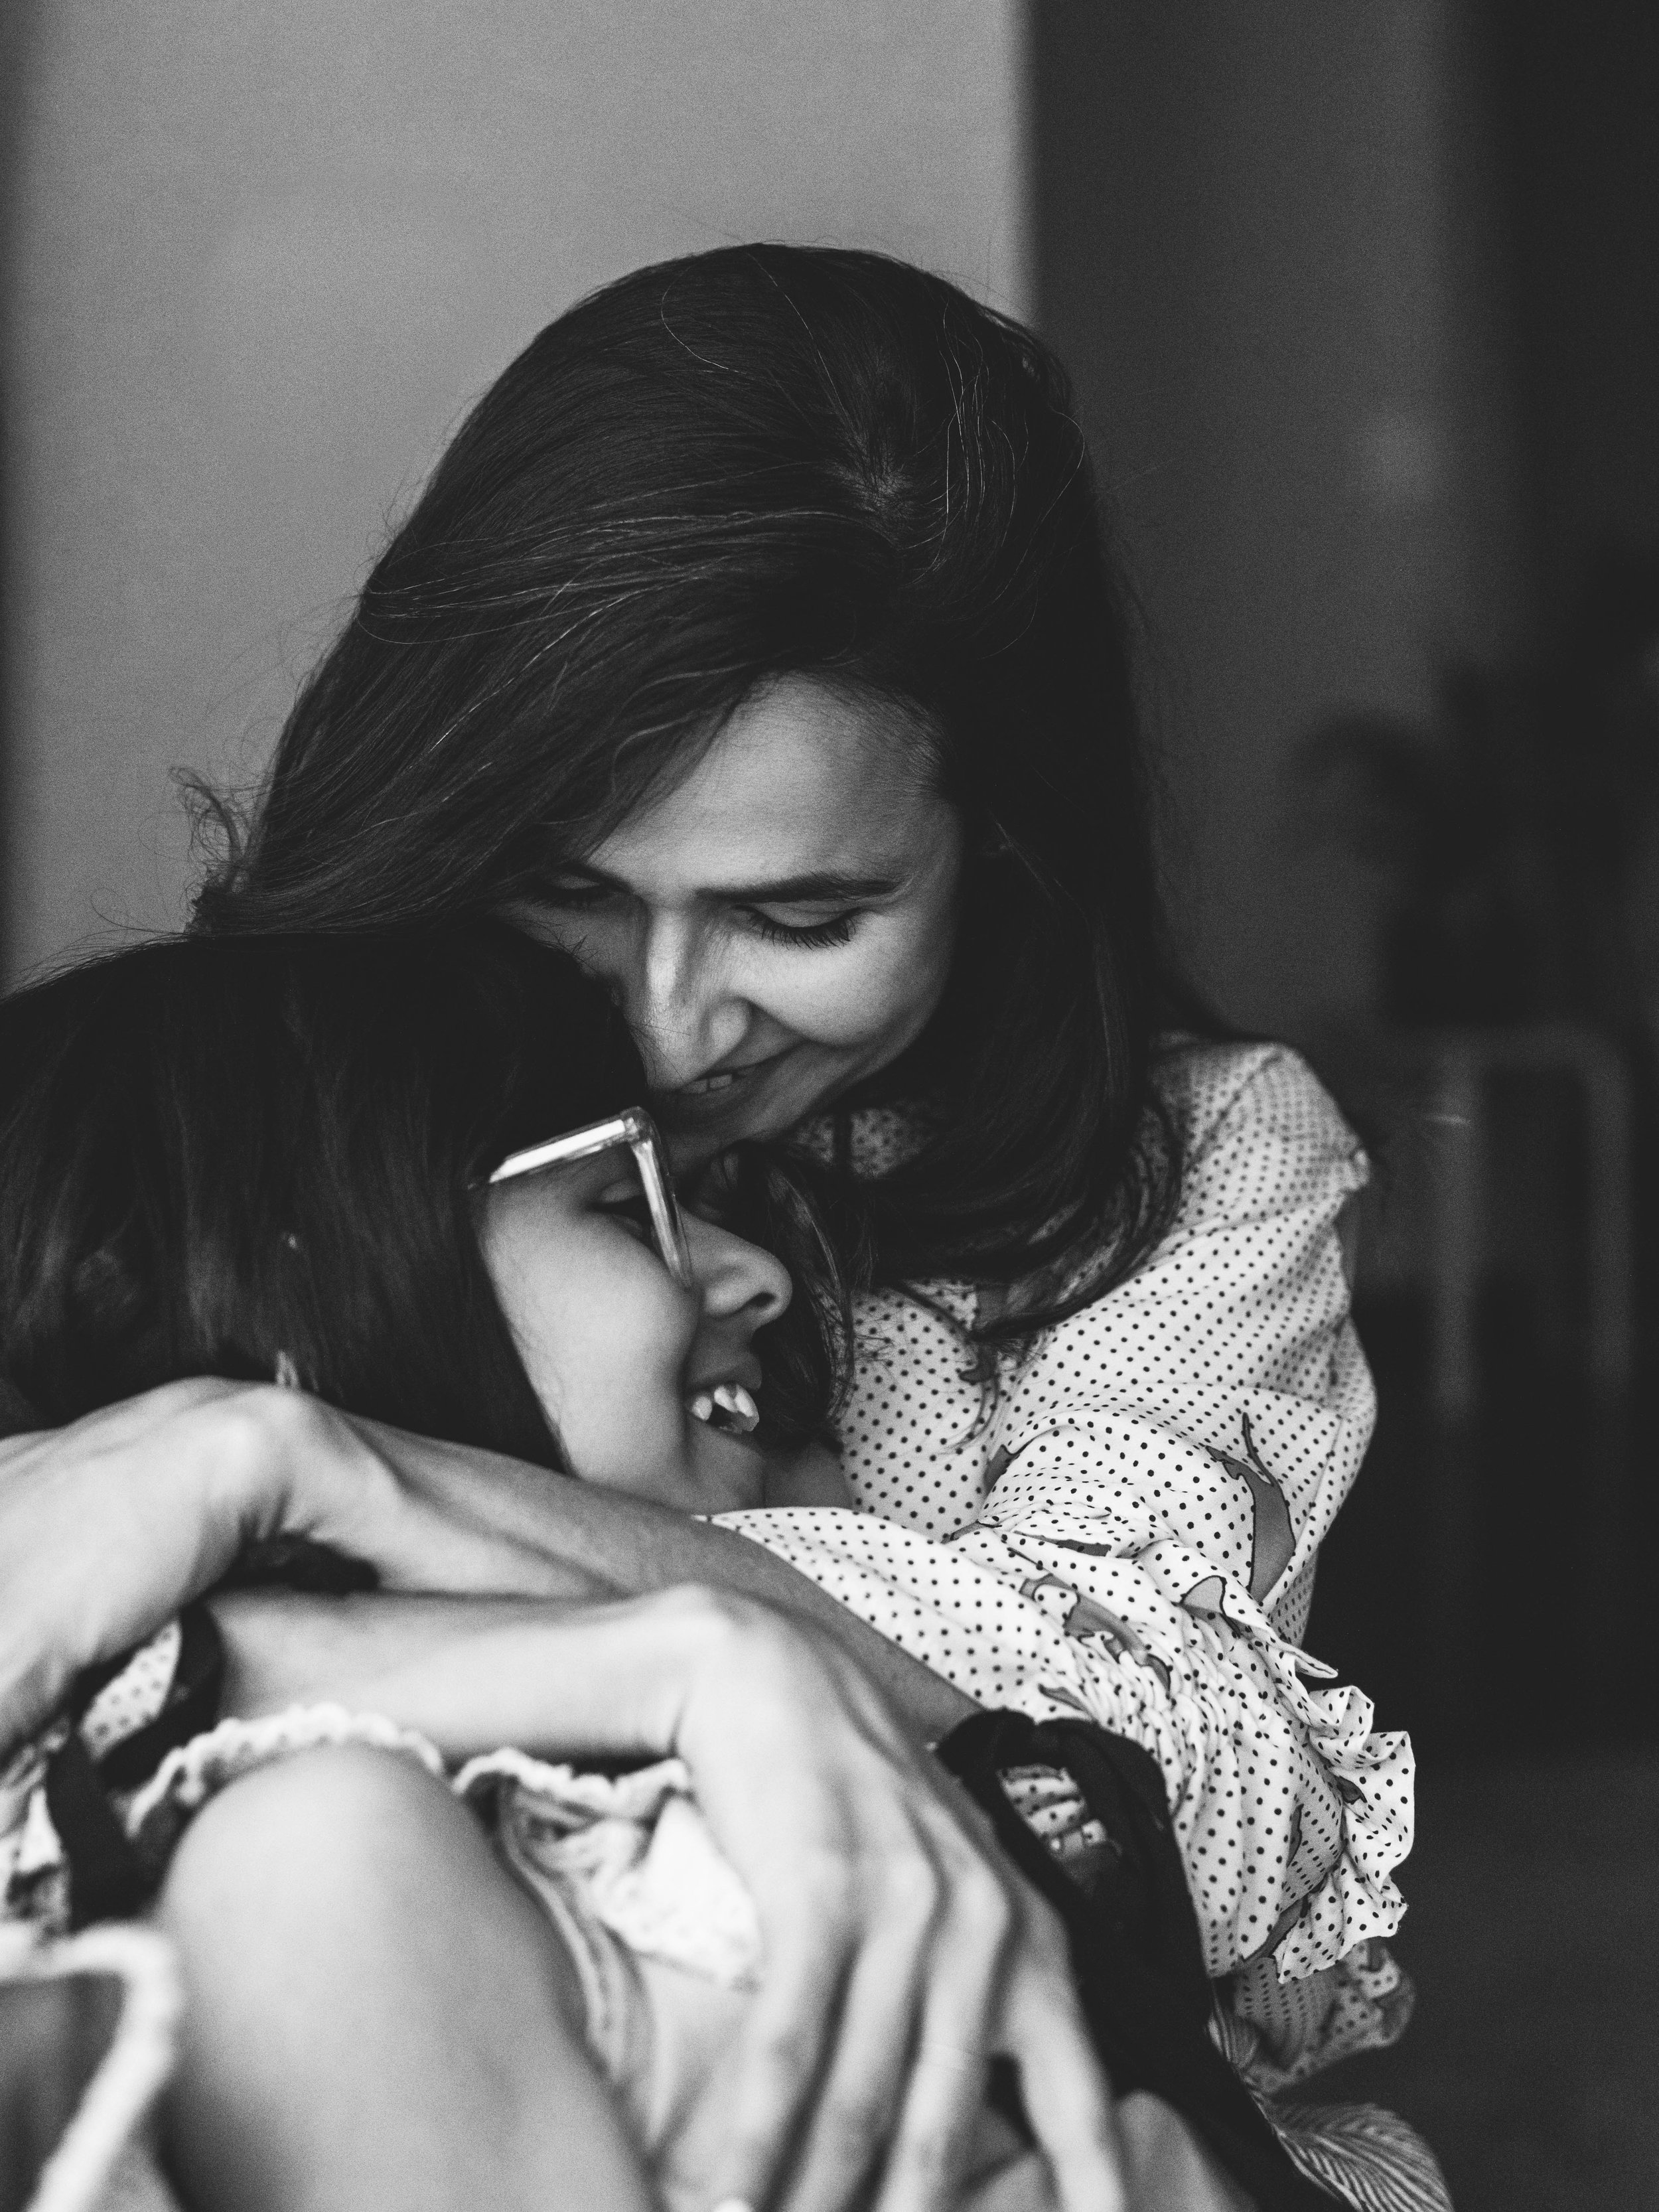 Mother and daughter photographs at their beautiful home near Seattle by Chelsea Macor Photography